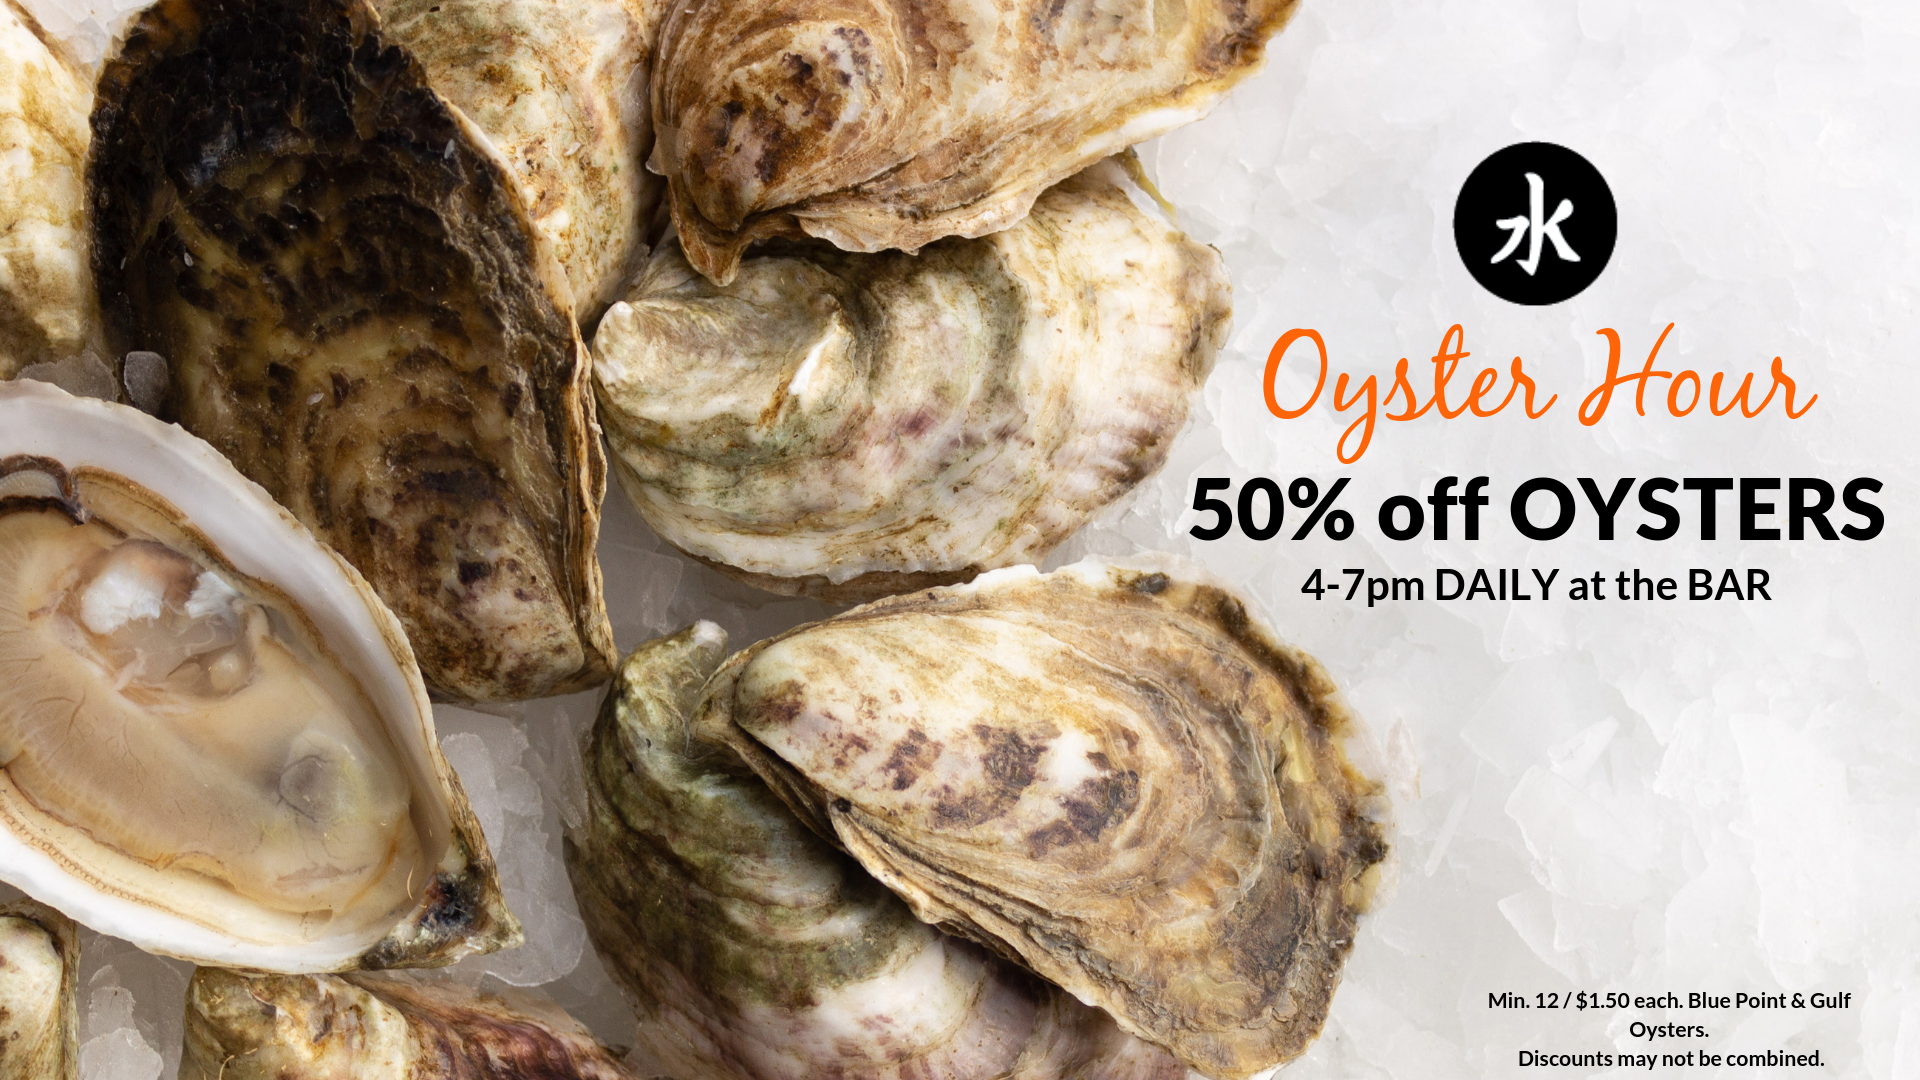 OYSTER HOUR  :: 50% off Blue Point and Gulf Oysters Daily from 4-7pm at the Bar. Minimum 12. Discounts may not be combined